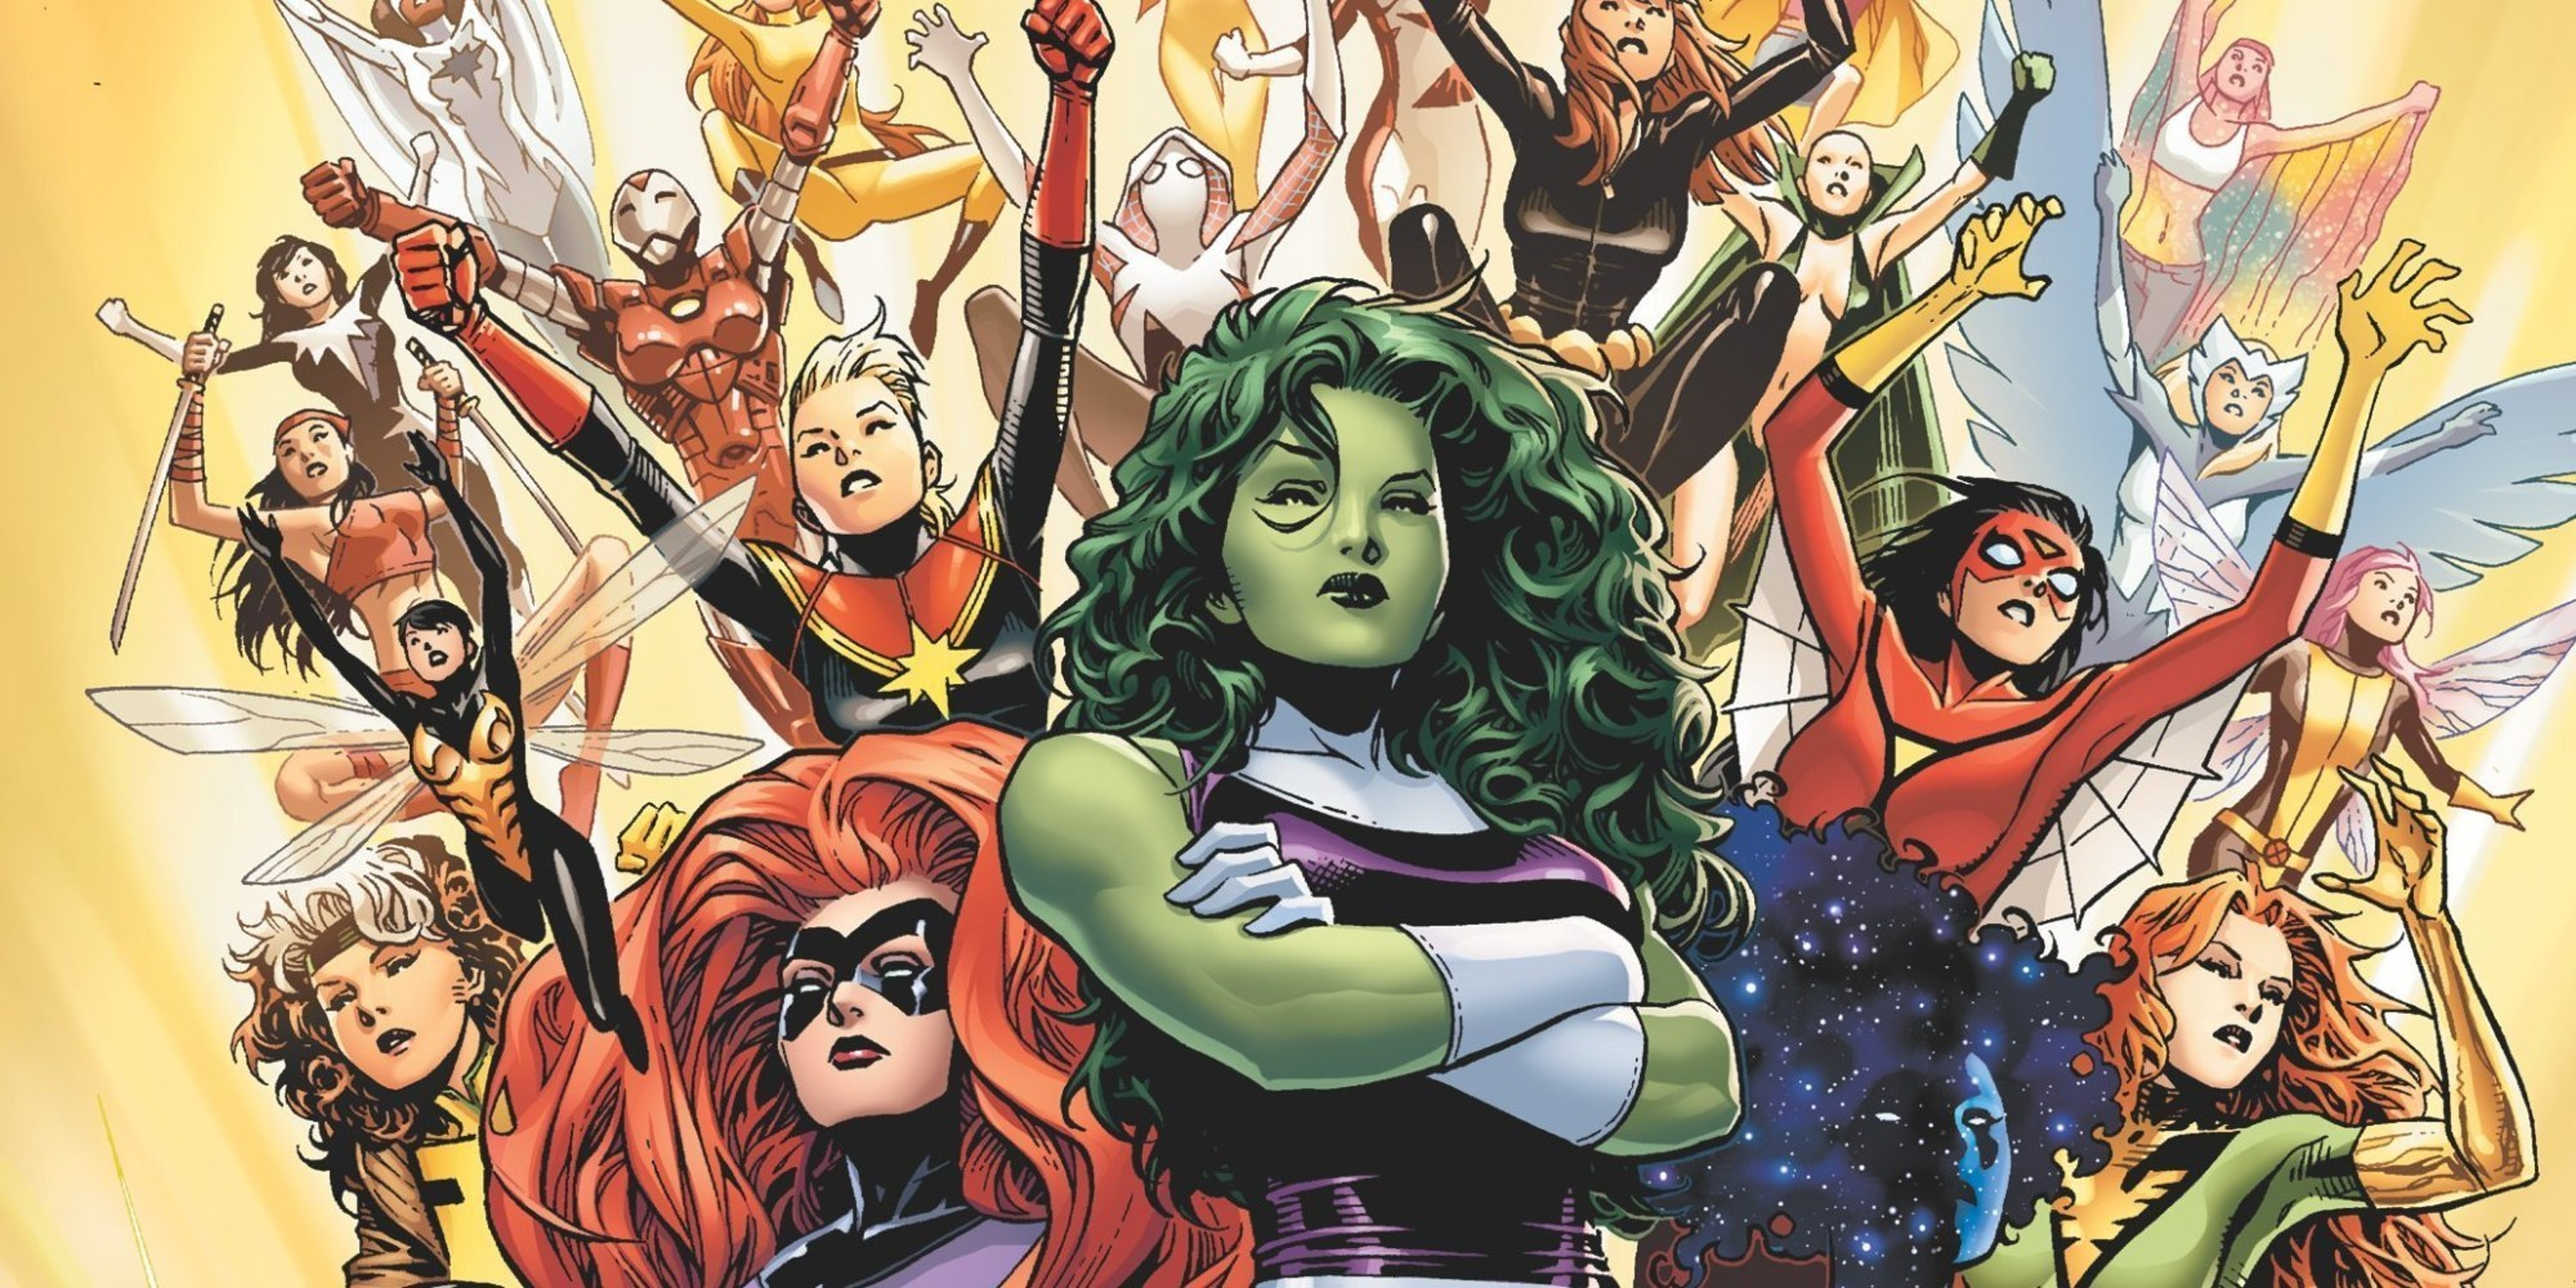 A few of the characters that make up Marvel's female superhero team, A-Force.